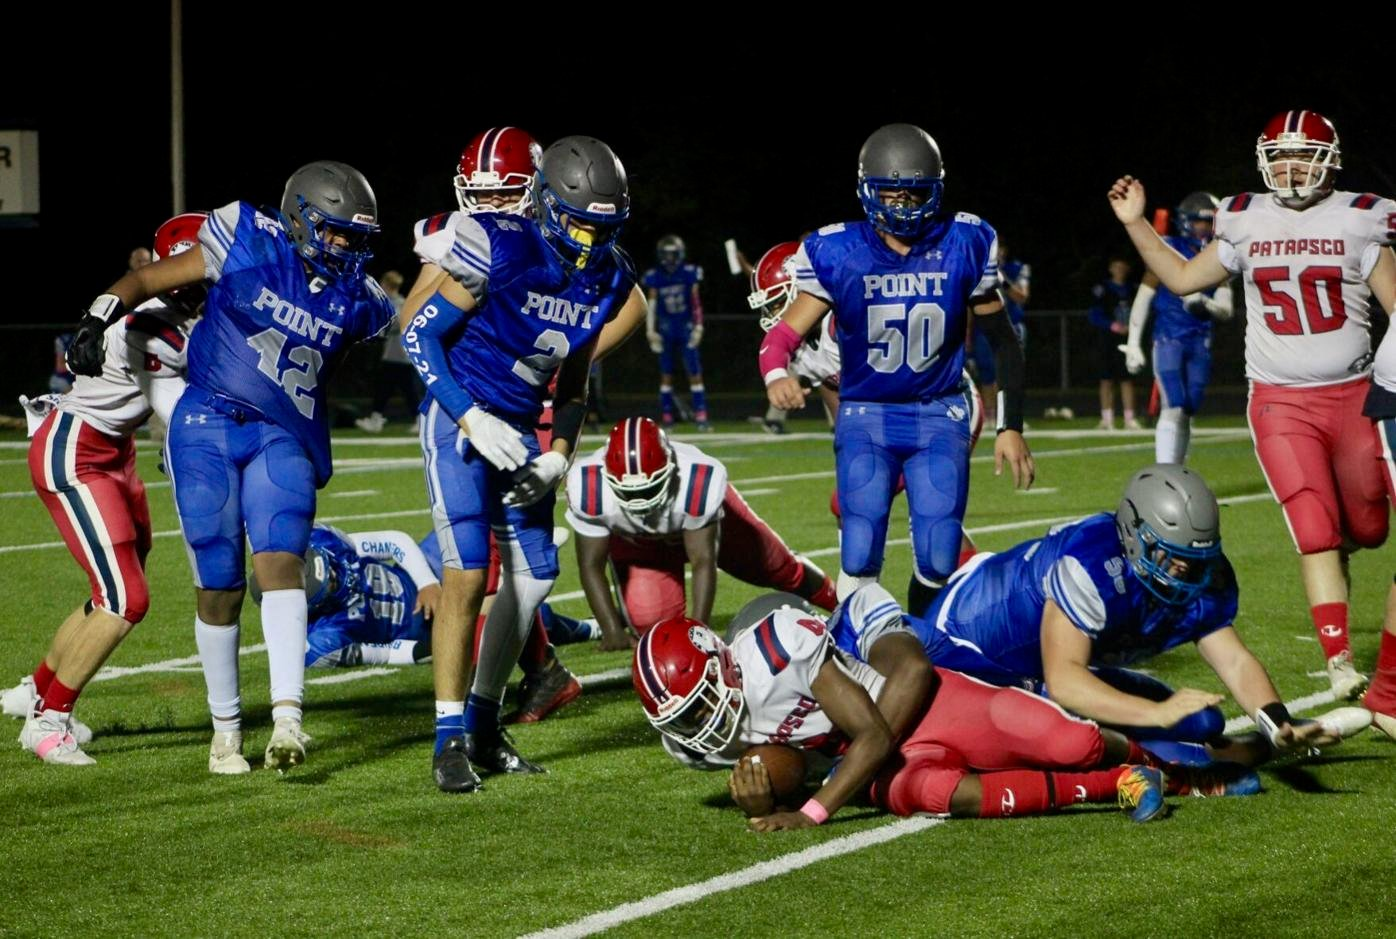 Pointers beat Patriots in homecoming game